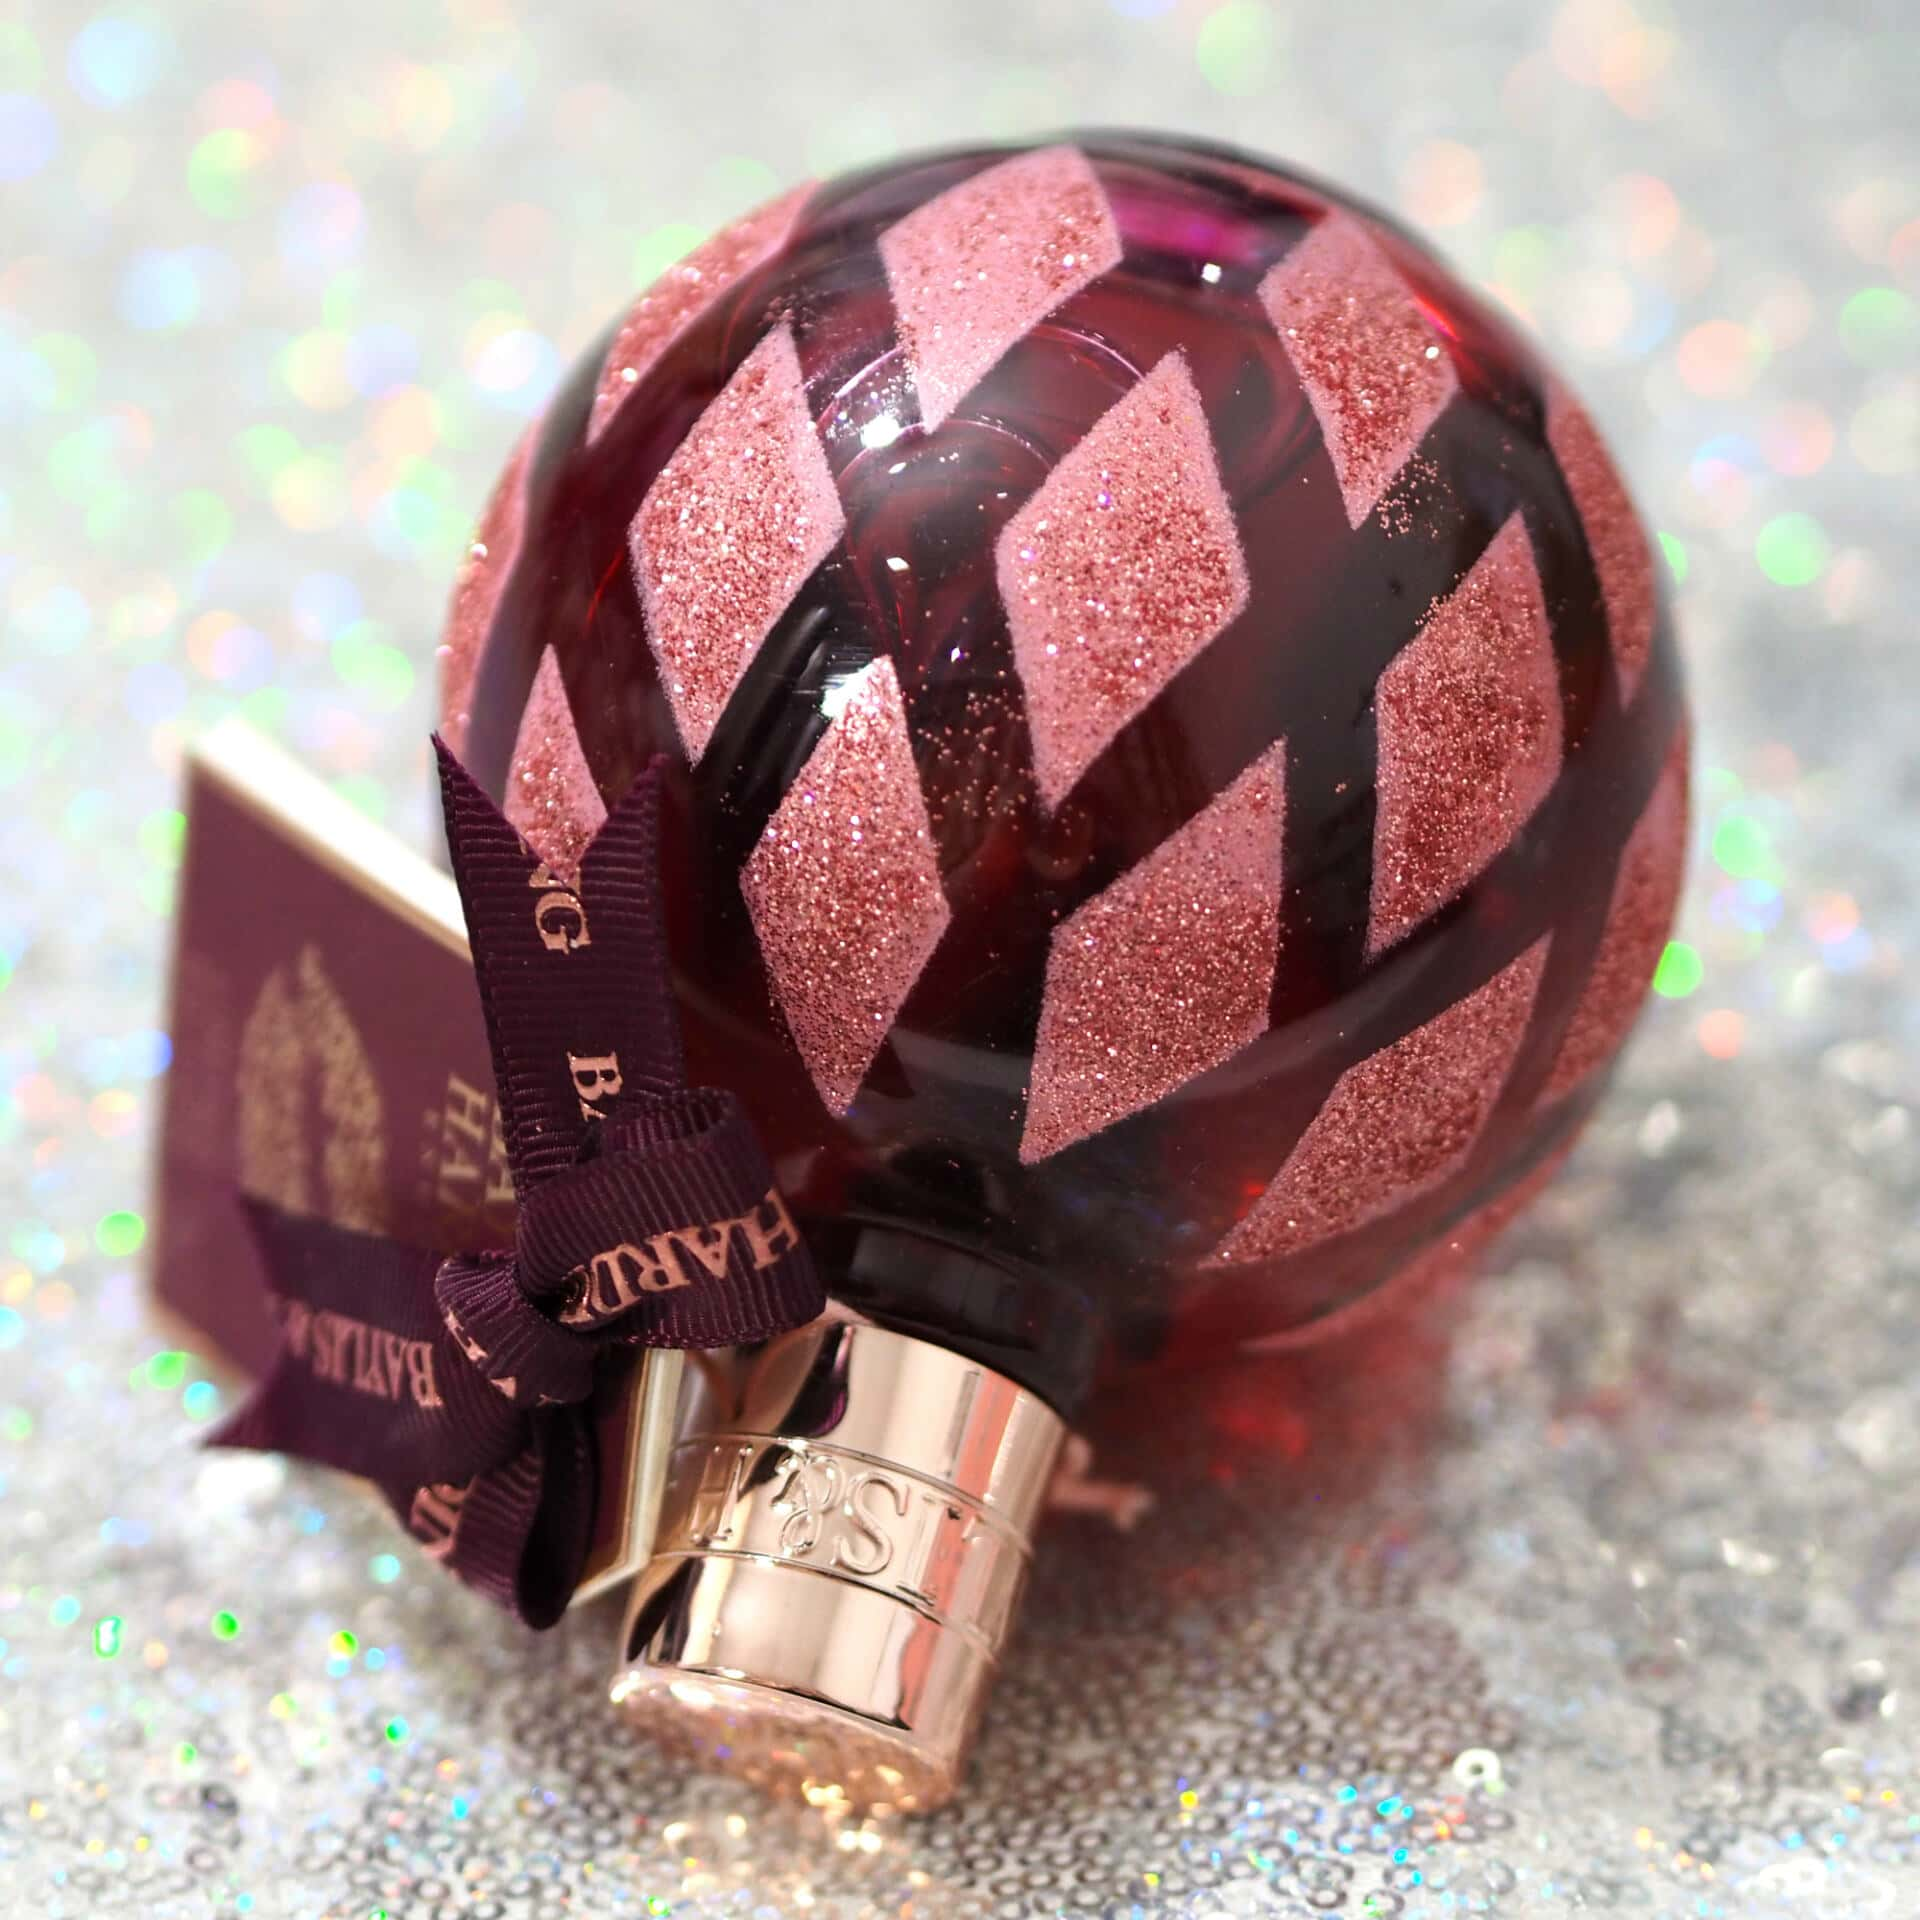 Baylis & Harding Cranberry Martini Bath Bauble